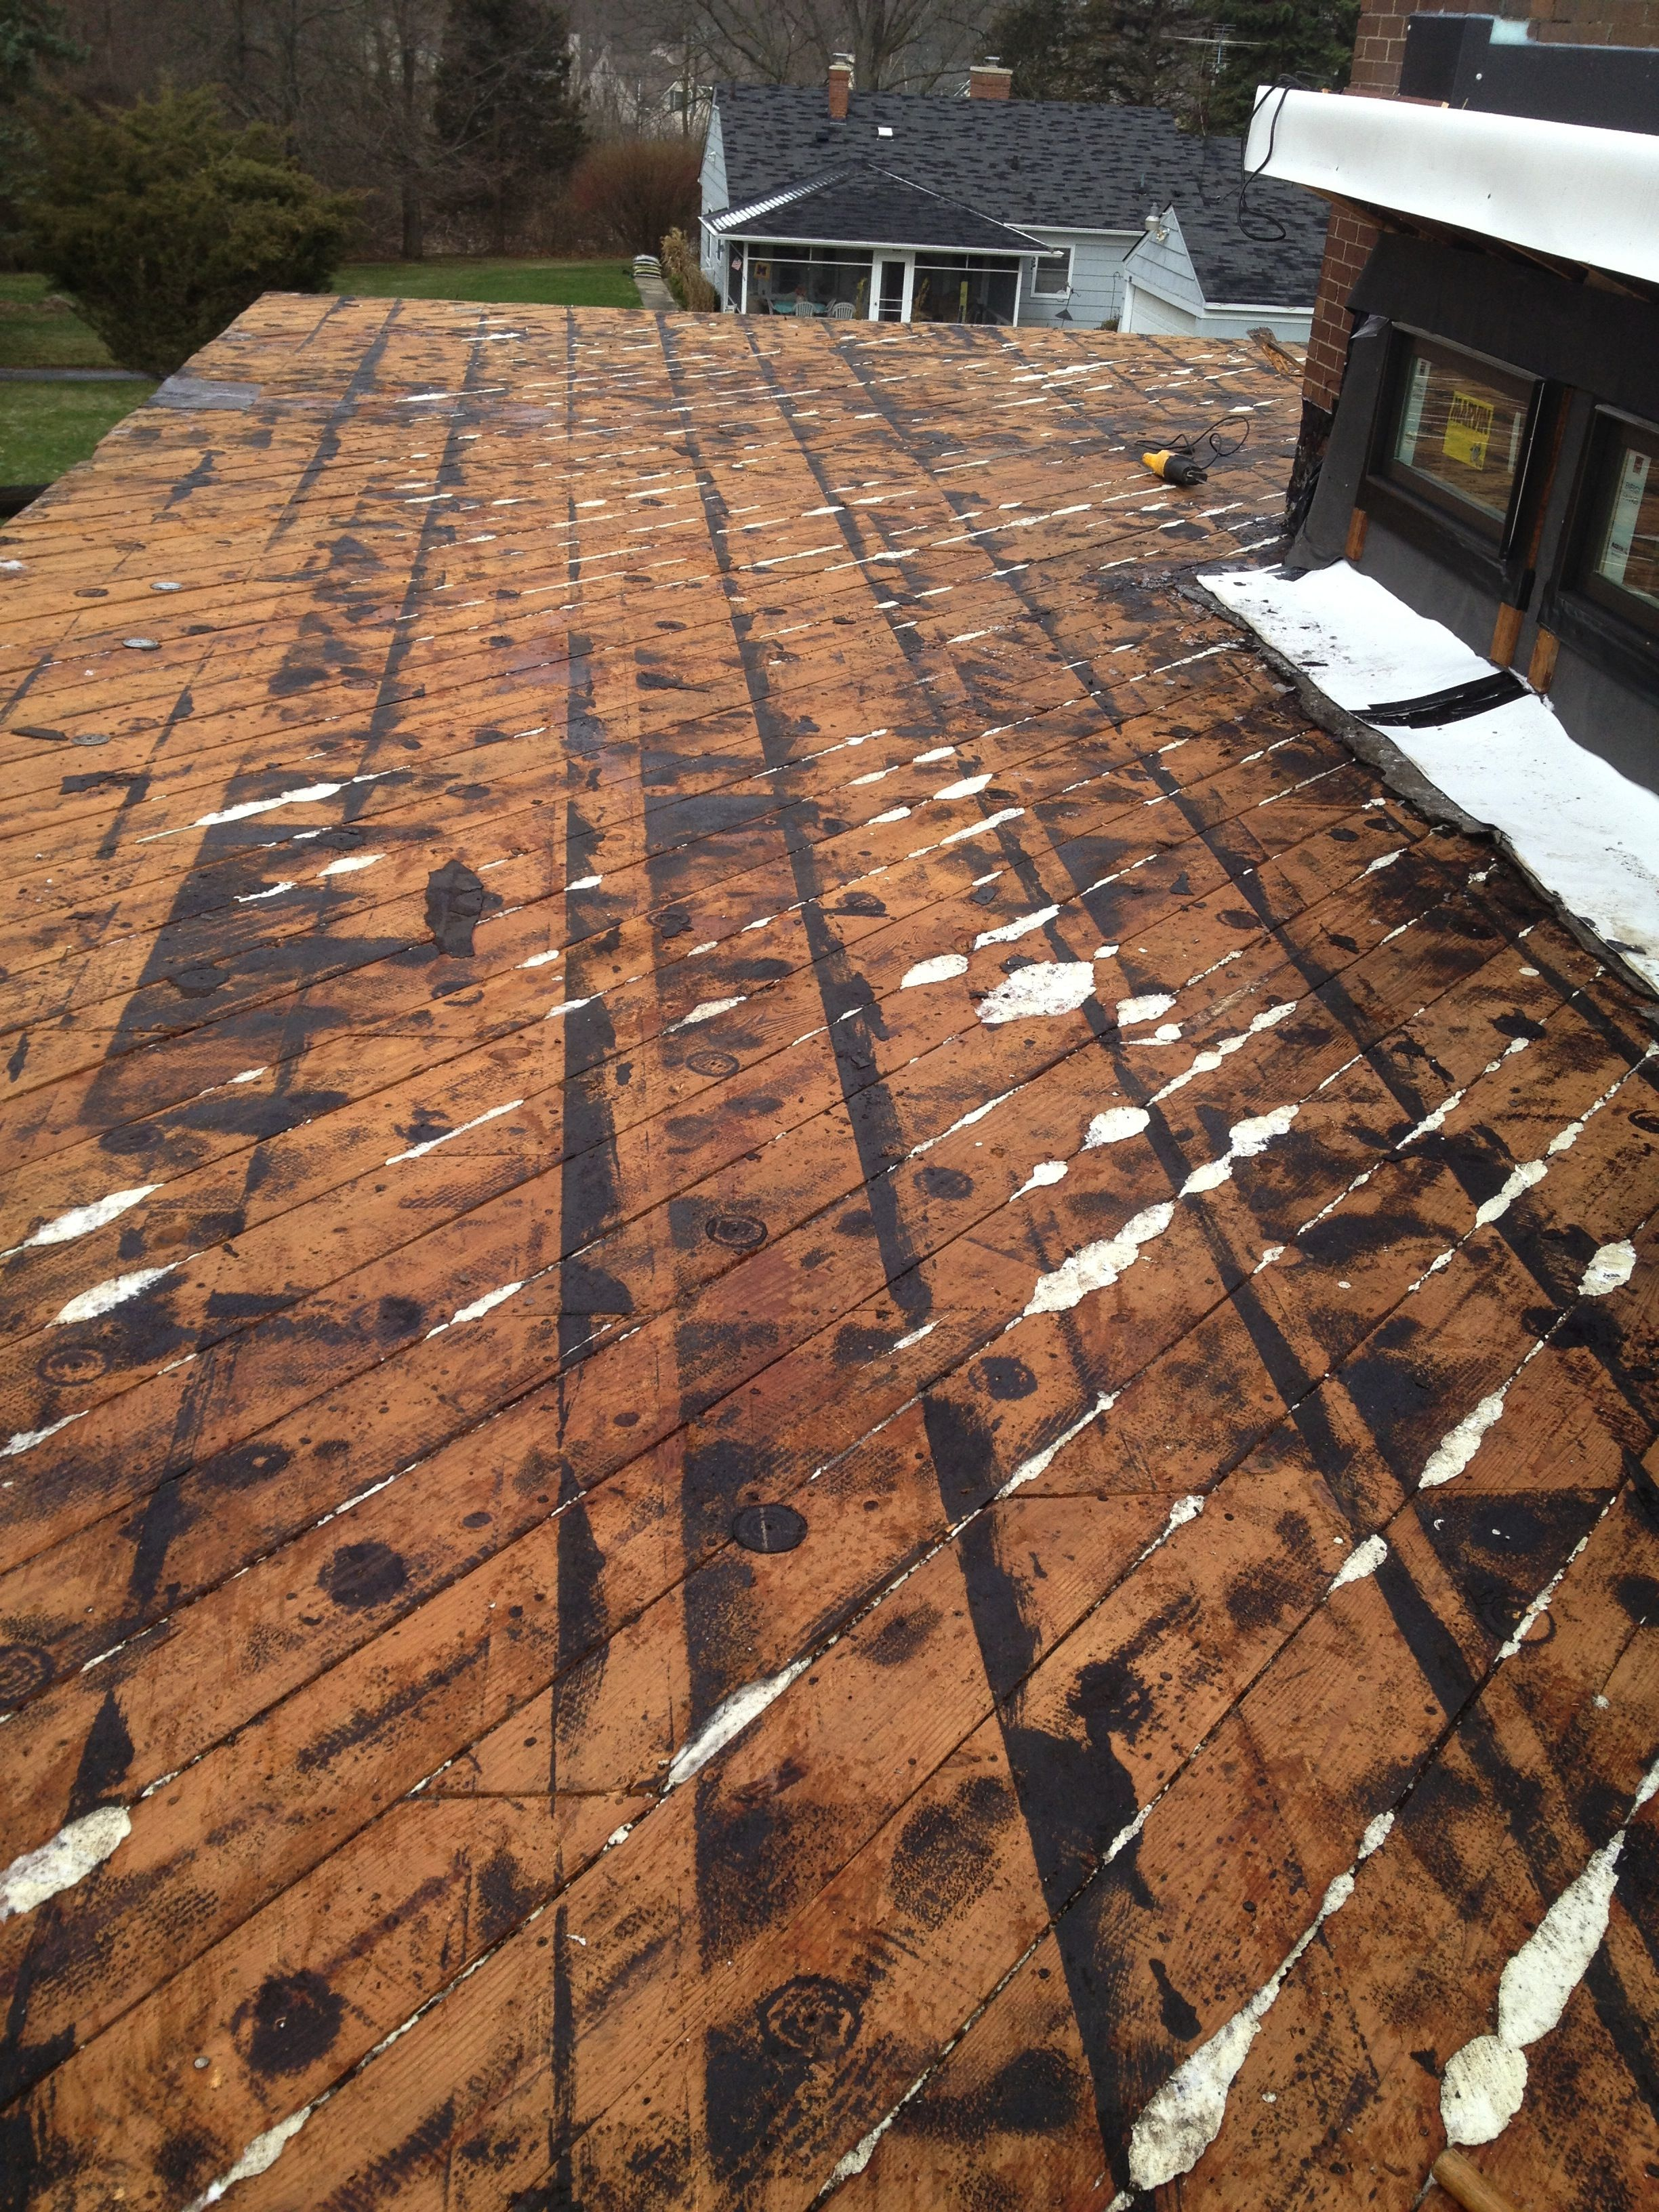 Best Exposing The Roof Deck Under The Decayed And Old Leaky 400 x 300